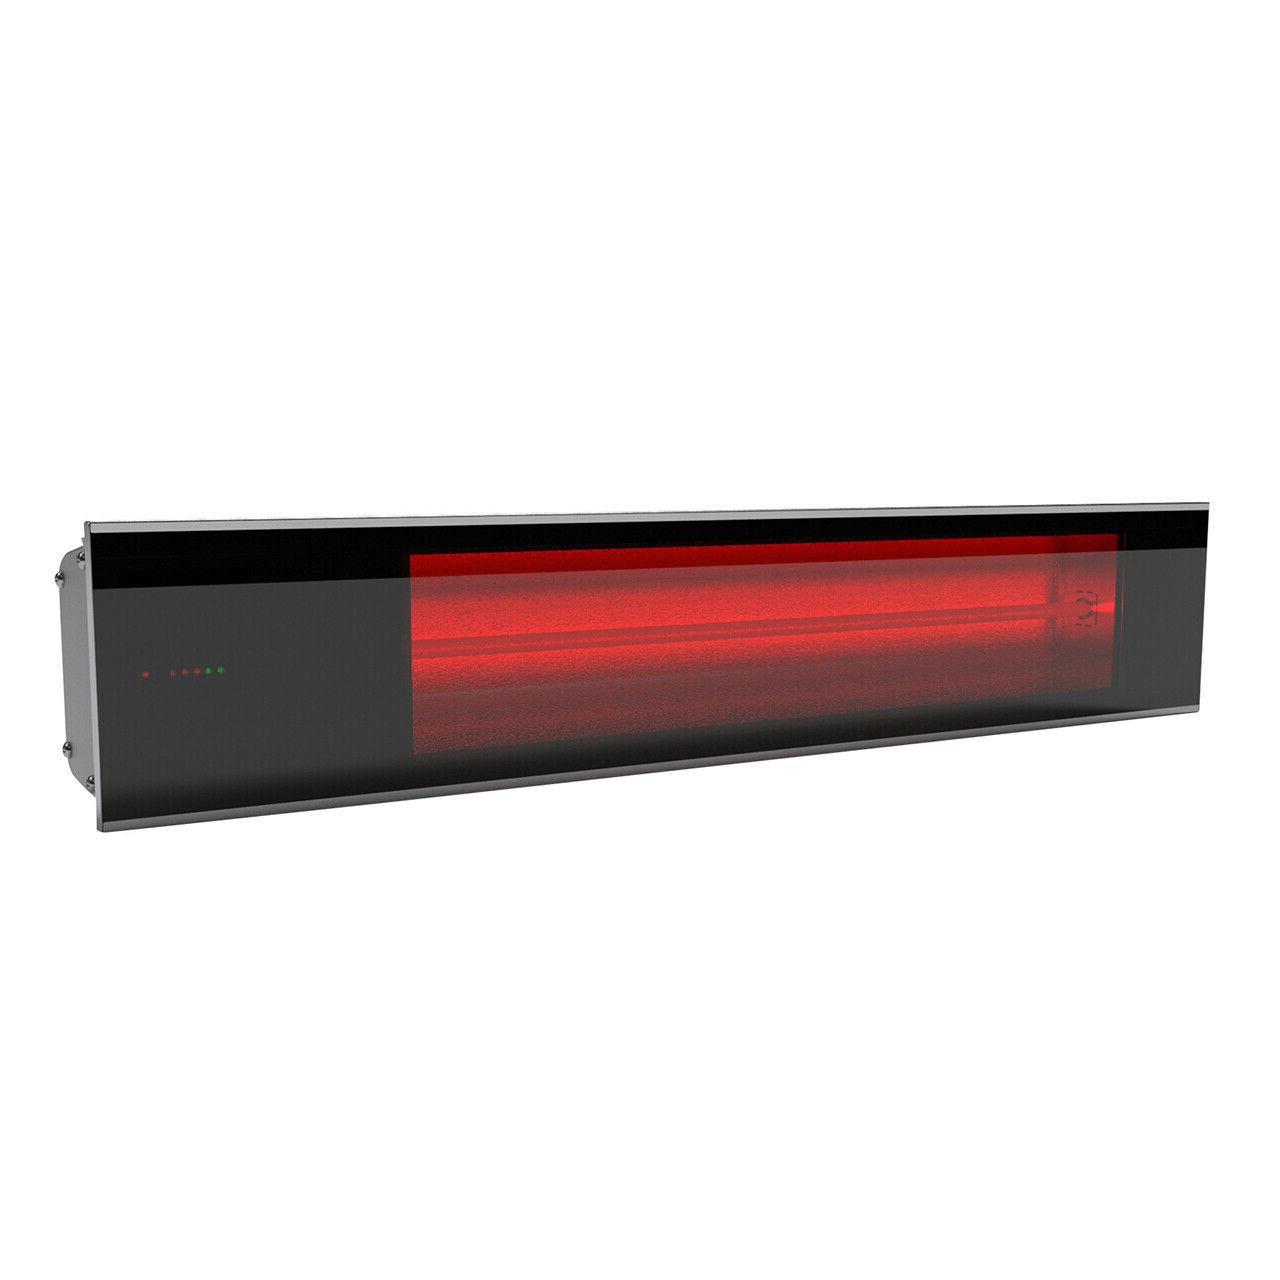 Dimplex Indoor/Outdoor Electric Infrared Heater - 240V/1800W